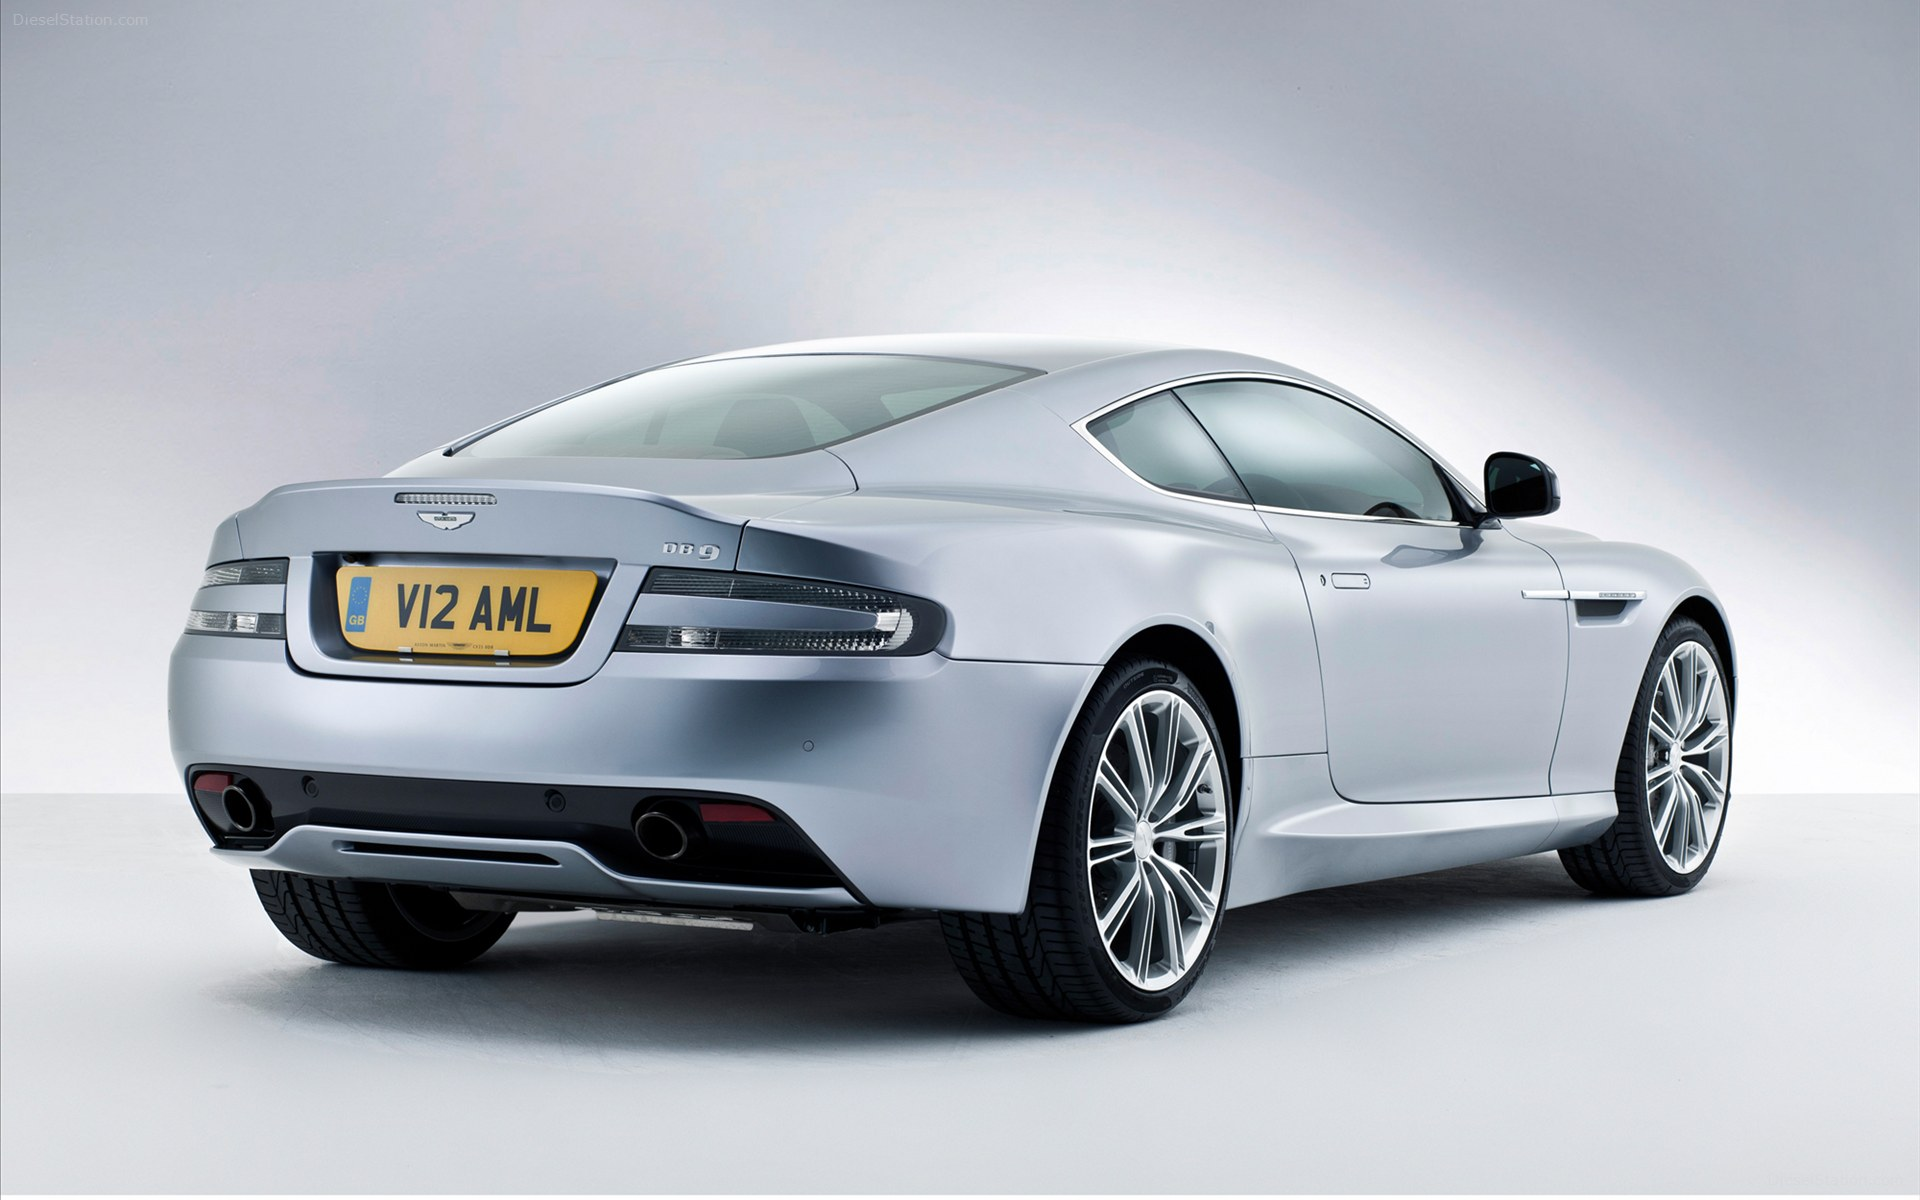 Aston Martin DB9 2013 Widescreen Free Download Image Of